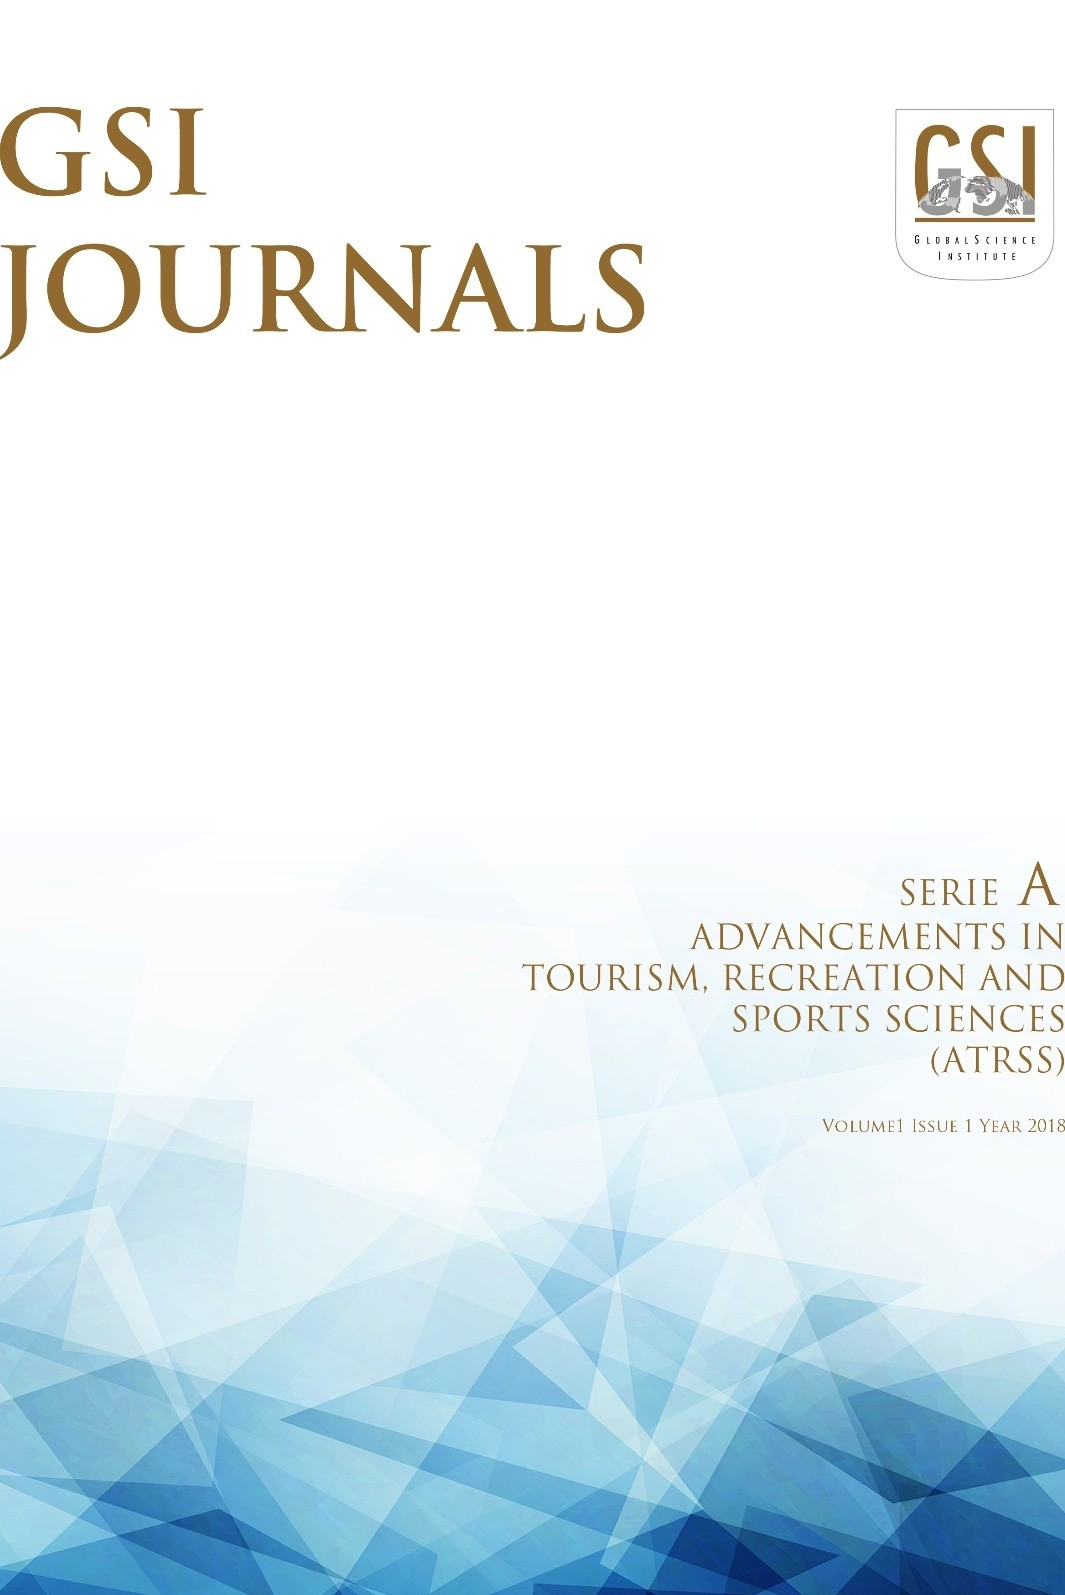 GSI Journals Serie A: Advancements in Tourism Recreation and Sports Sciences